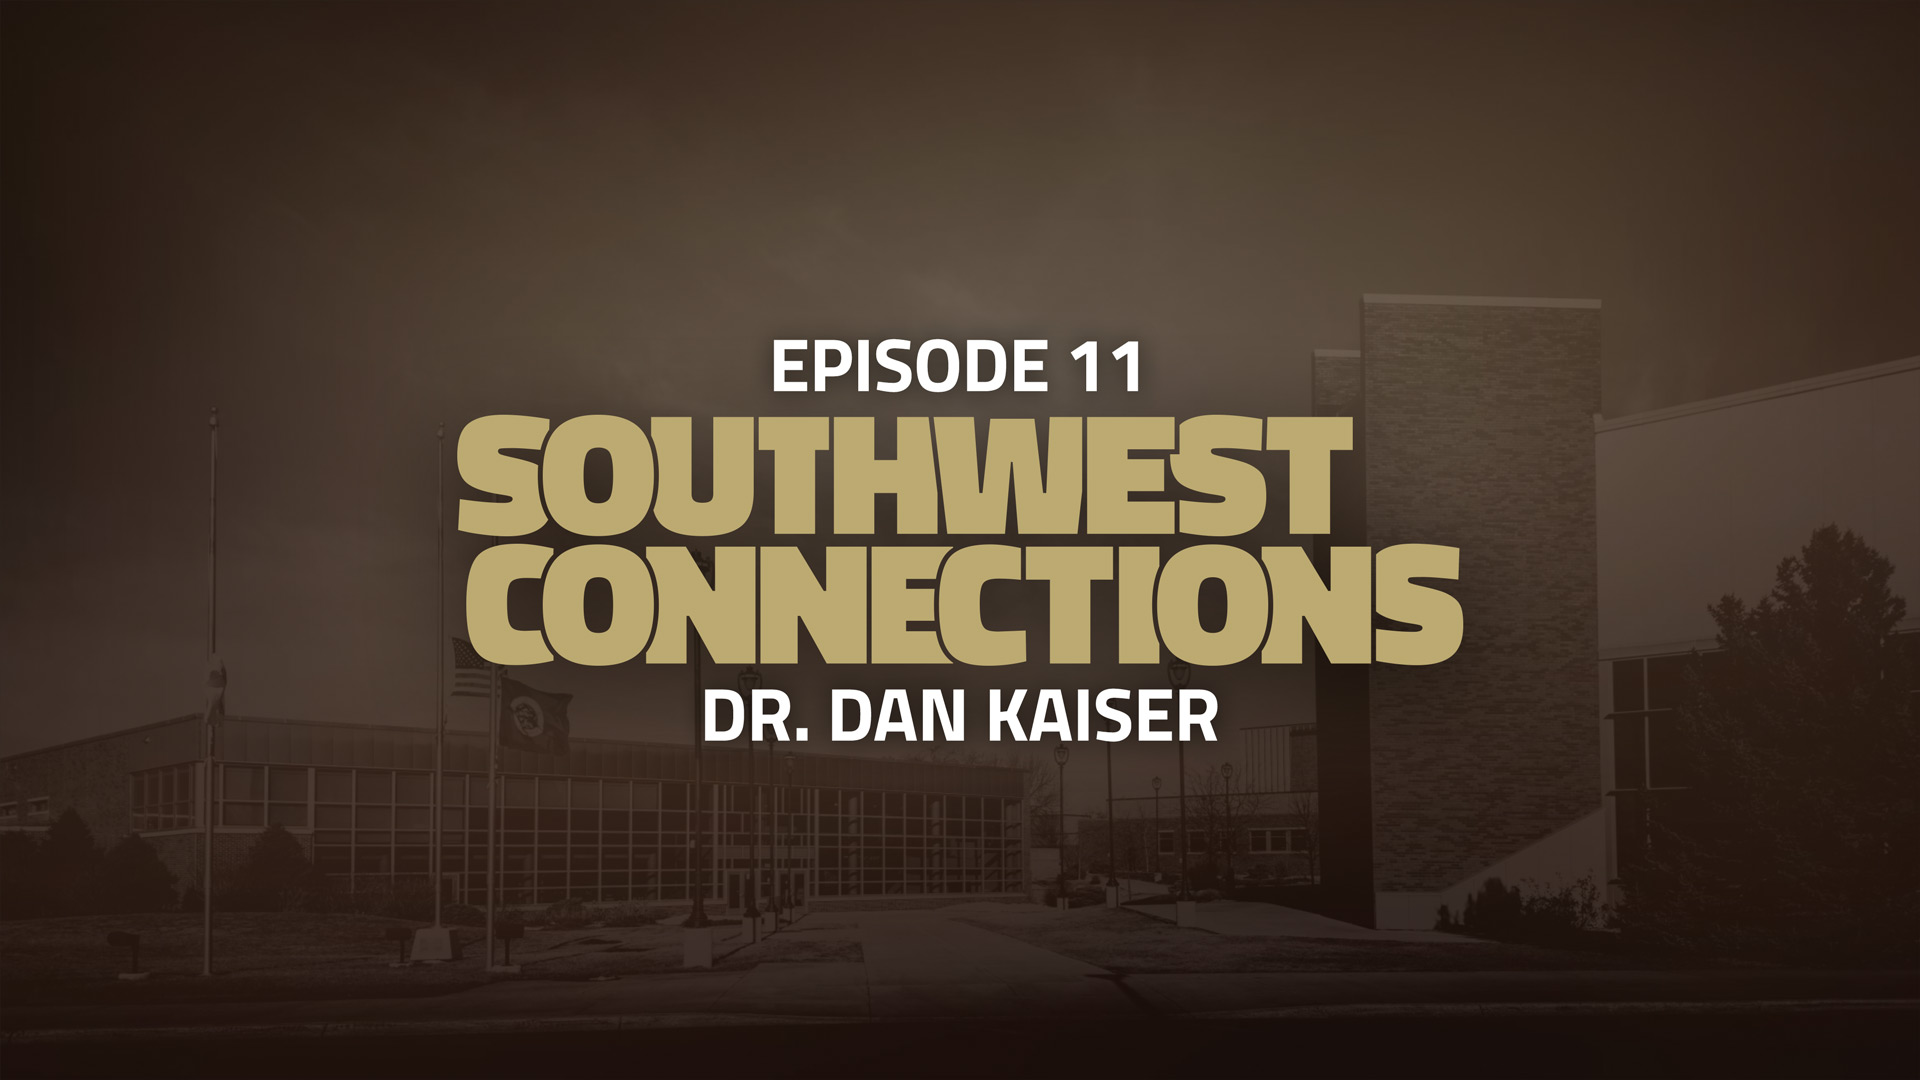 Southwest Connections Episode 11: Dr. Dan Kaiser